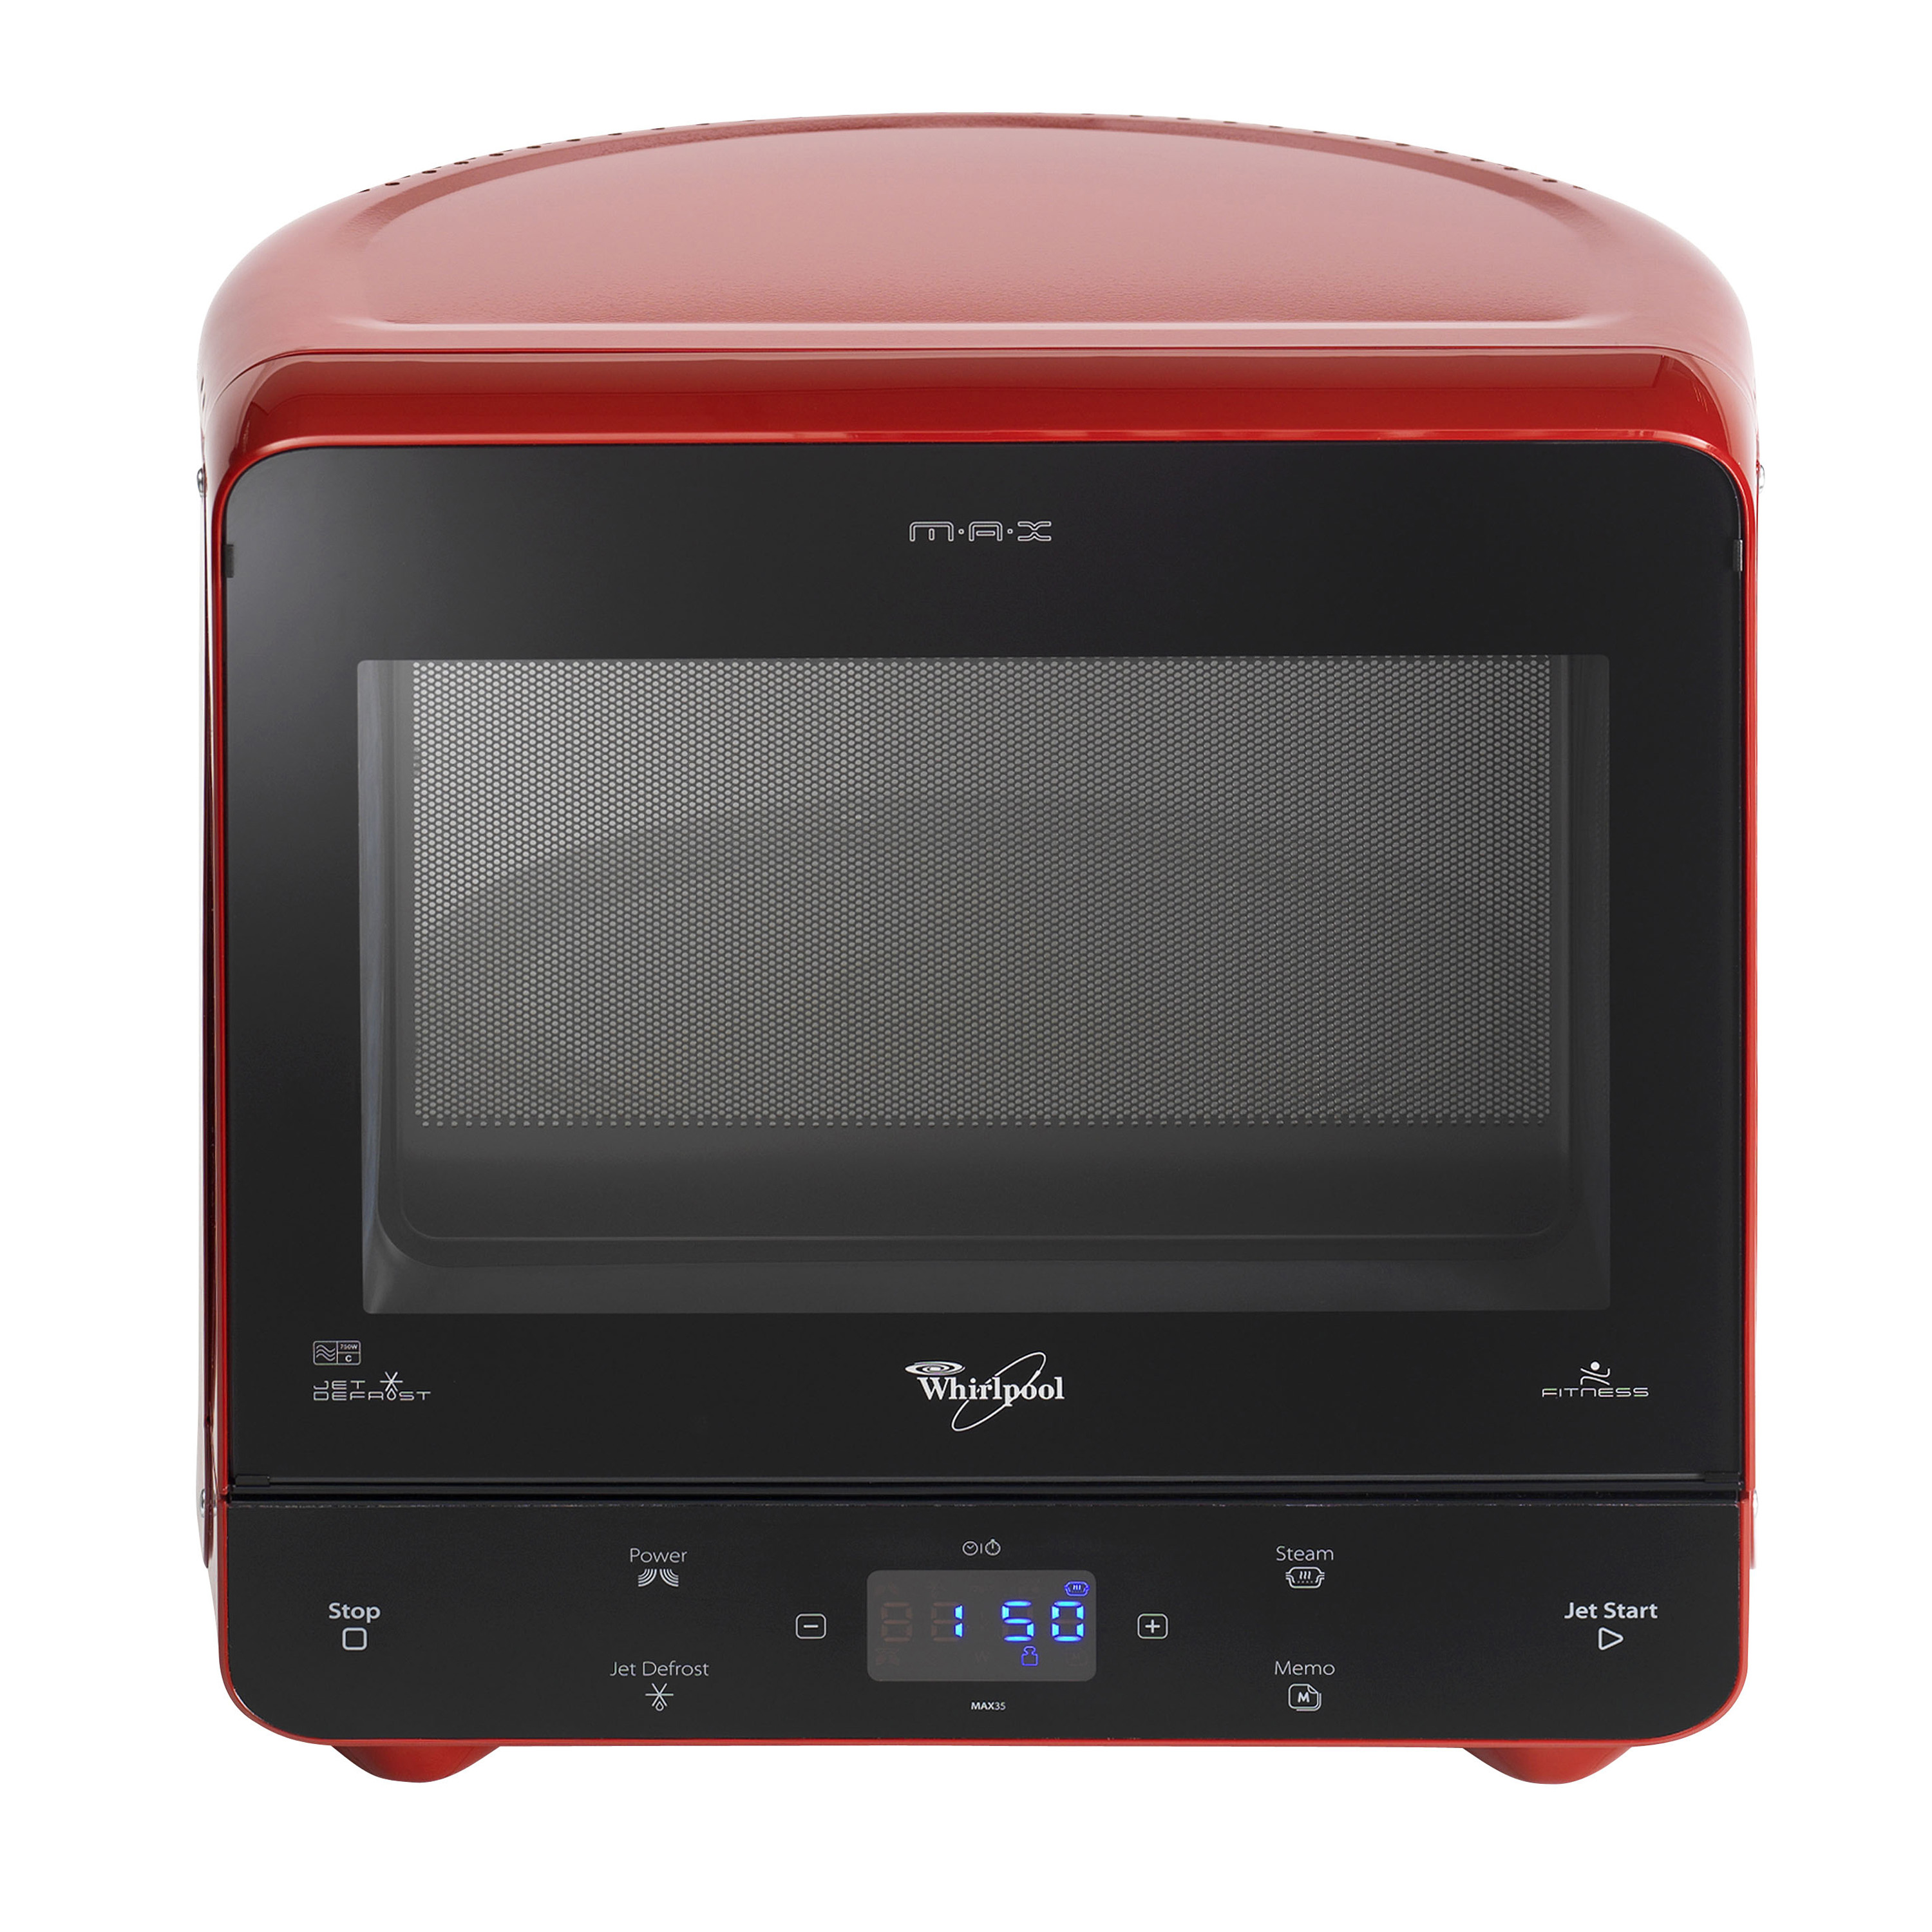 Whirlpool max 35 rd microwave jet defrost auto steam function red ebay - Whirlpool micro onde max ...